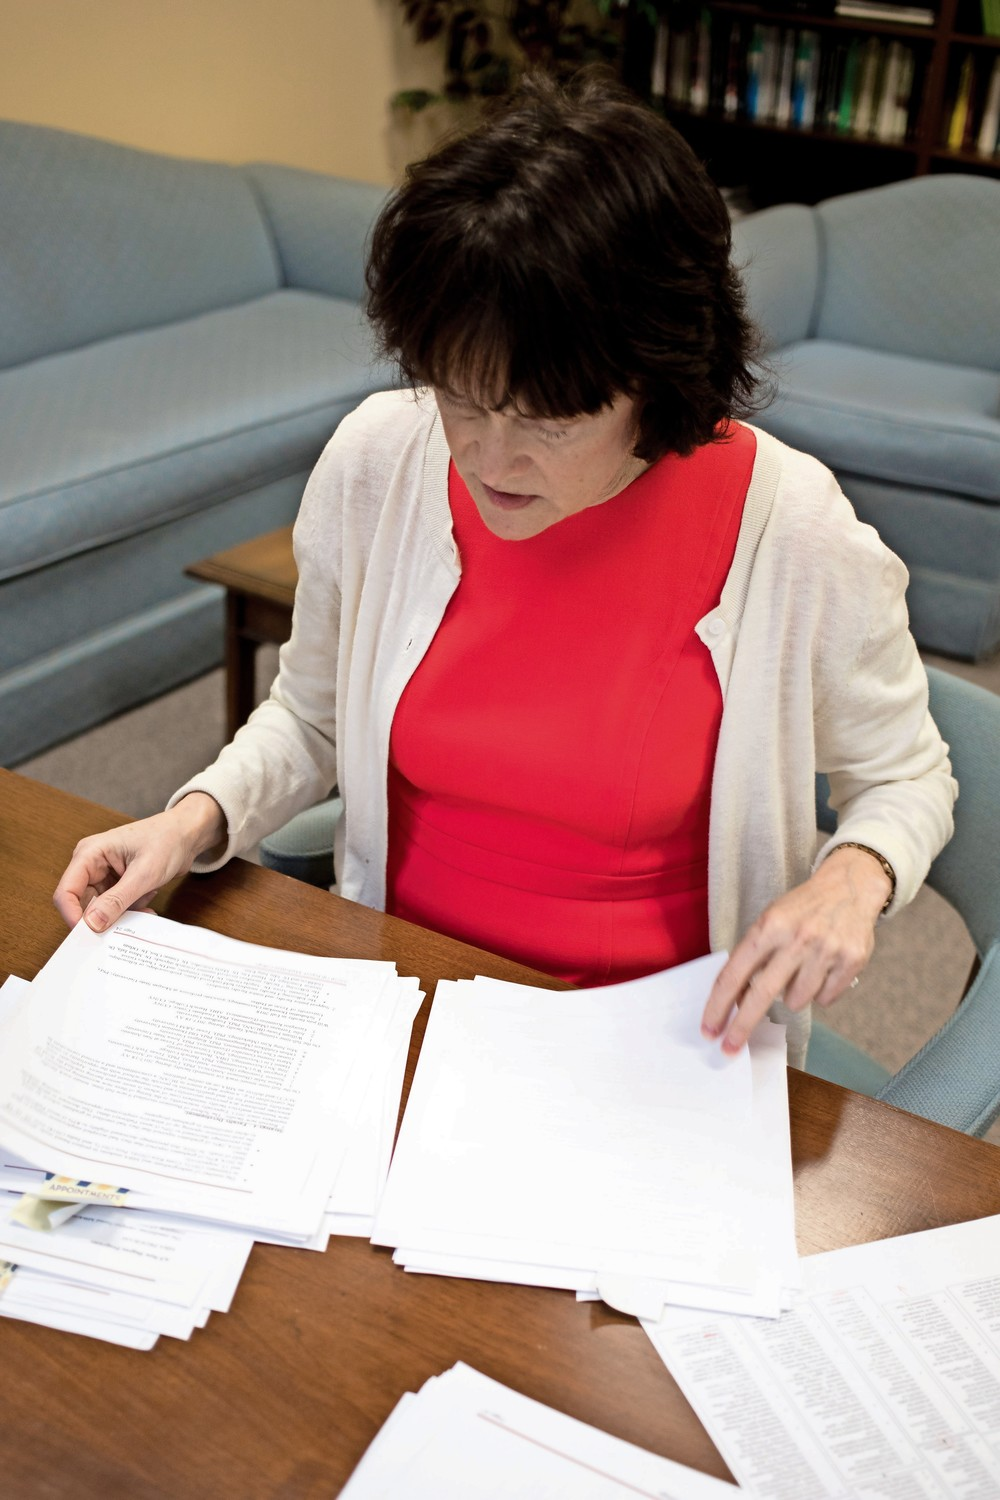 Janet Rovenpor, associate dean of Manhattan College?s School of Business, looks through paper work in a meeting with Aileen Farrelly, an assistant dean.